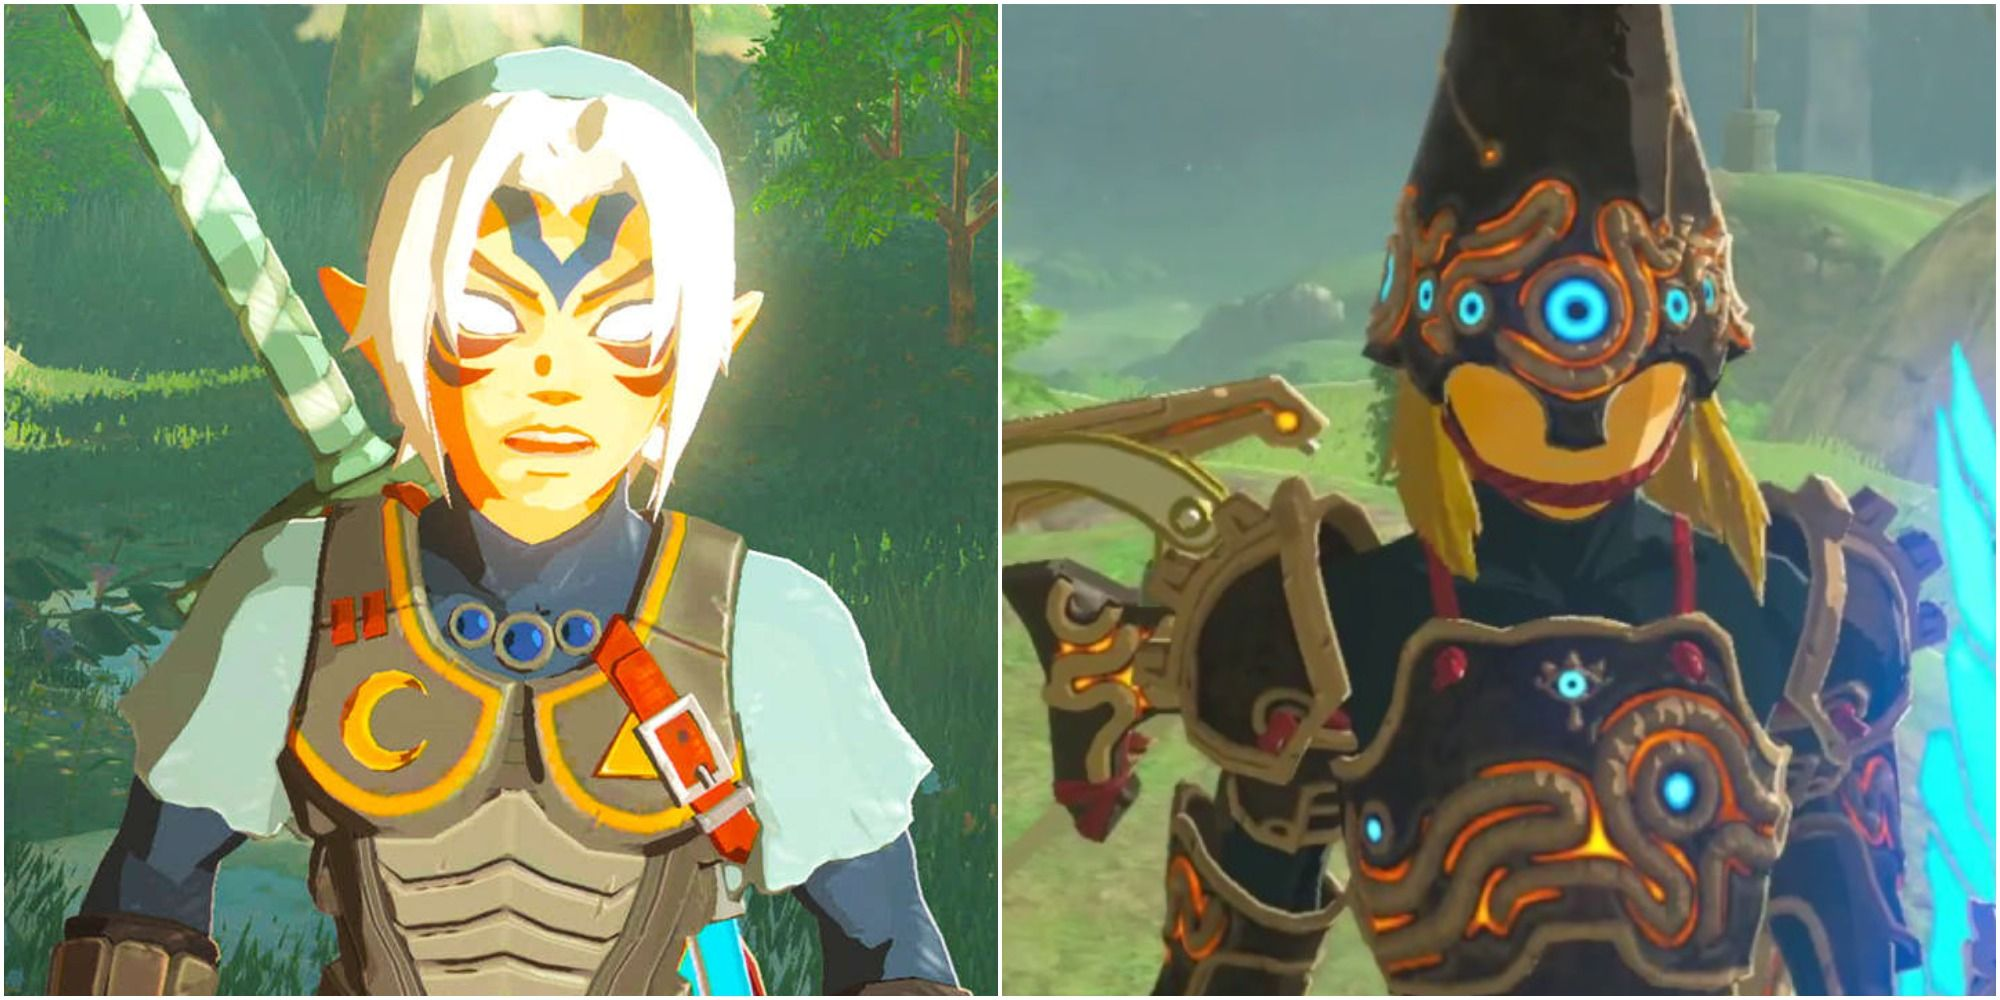 Breath of the Wild's Best Armor (Based On Fashion) | Screen Rant